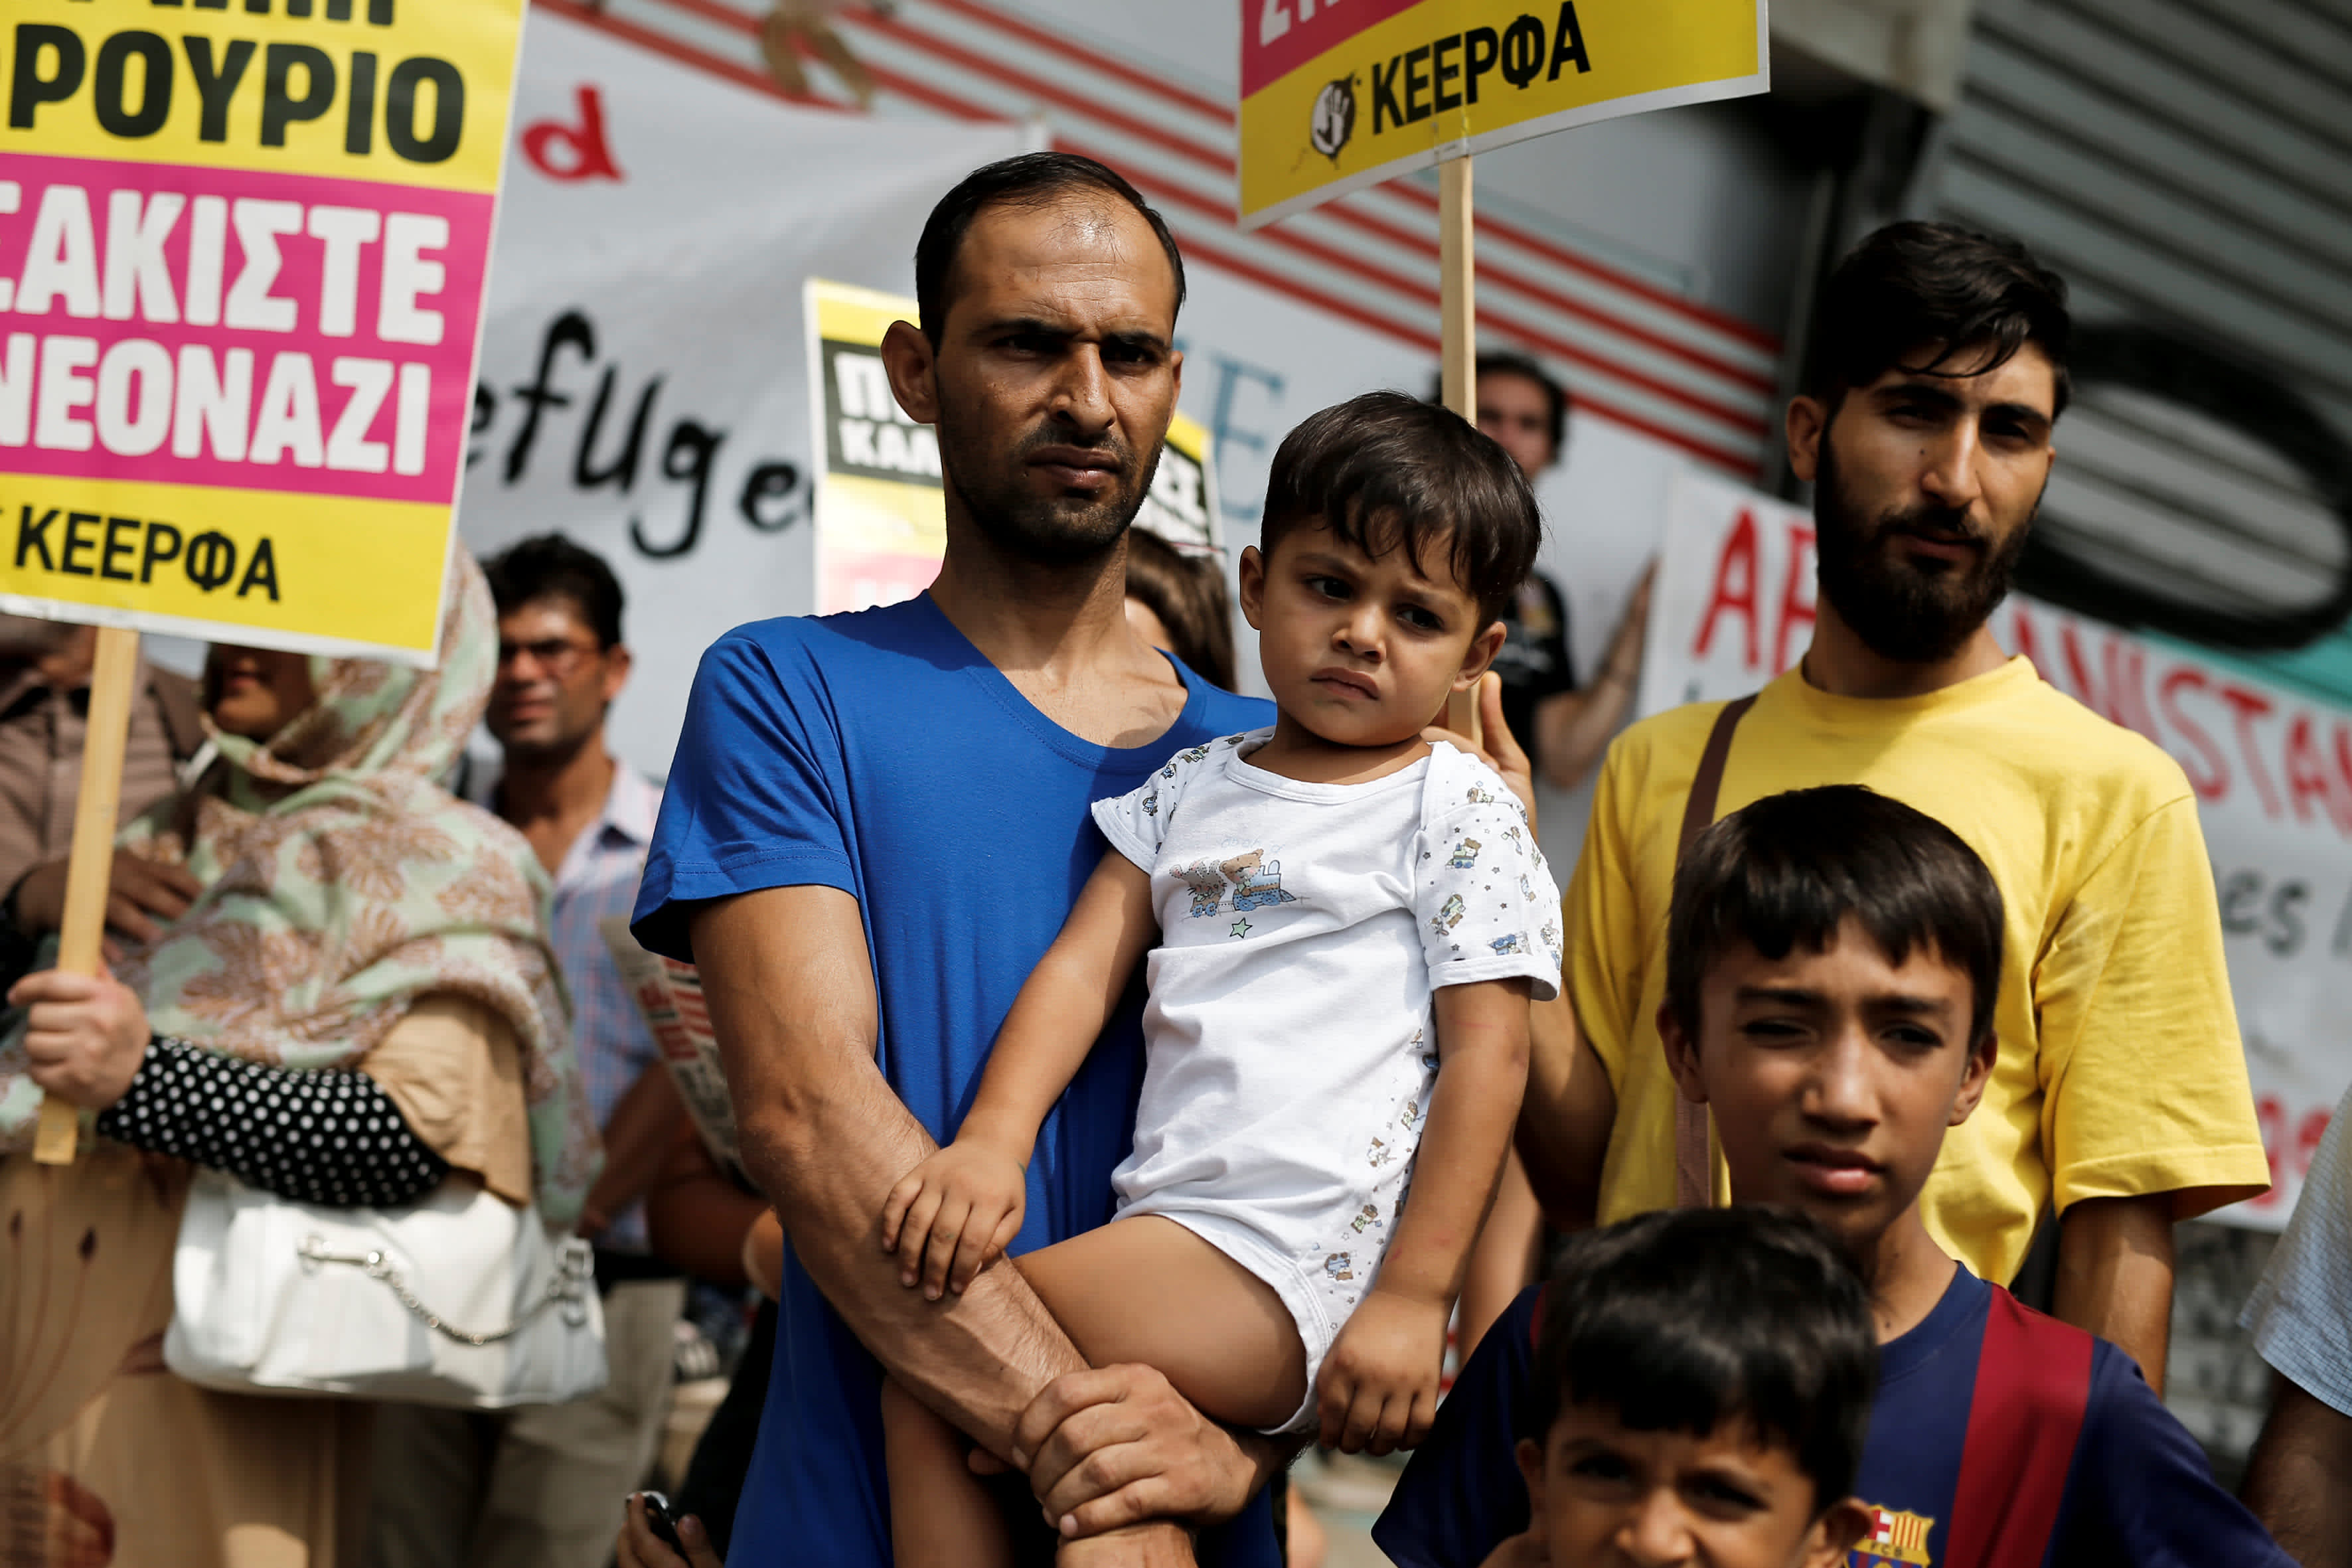 Afghan migrants living in Greece take part in a protest demanding rights as refugees fleeing war, outside the Migration Ministry in Athens, Greece August 22, 2017 (REUTERS/ALKIS KONSTANTINIDIS)